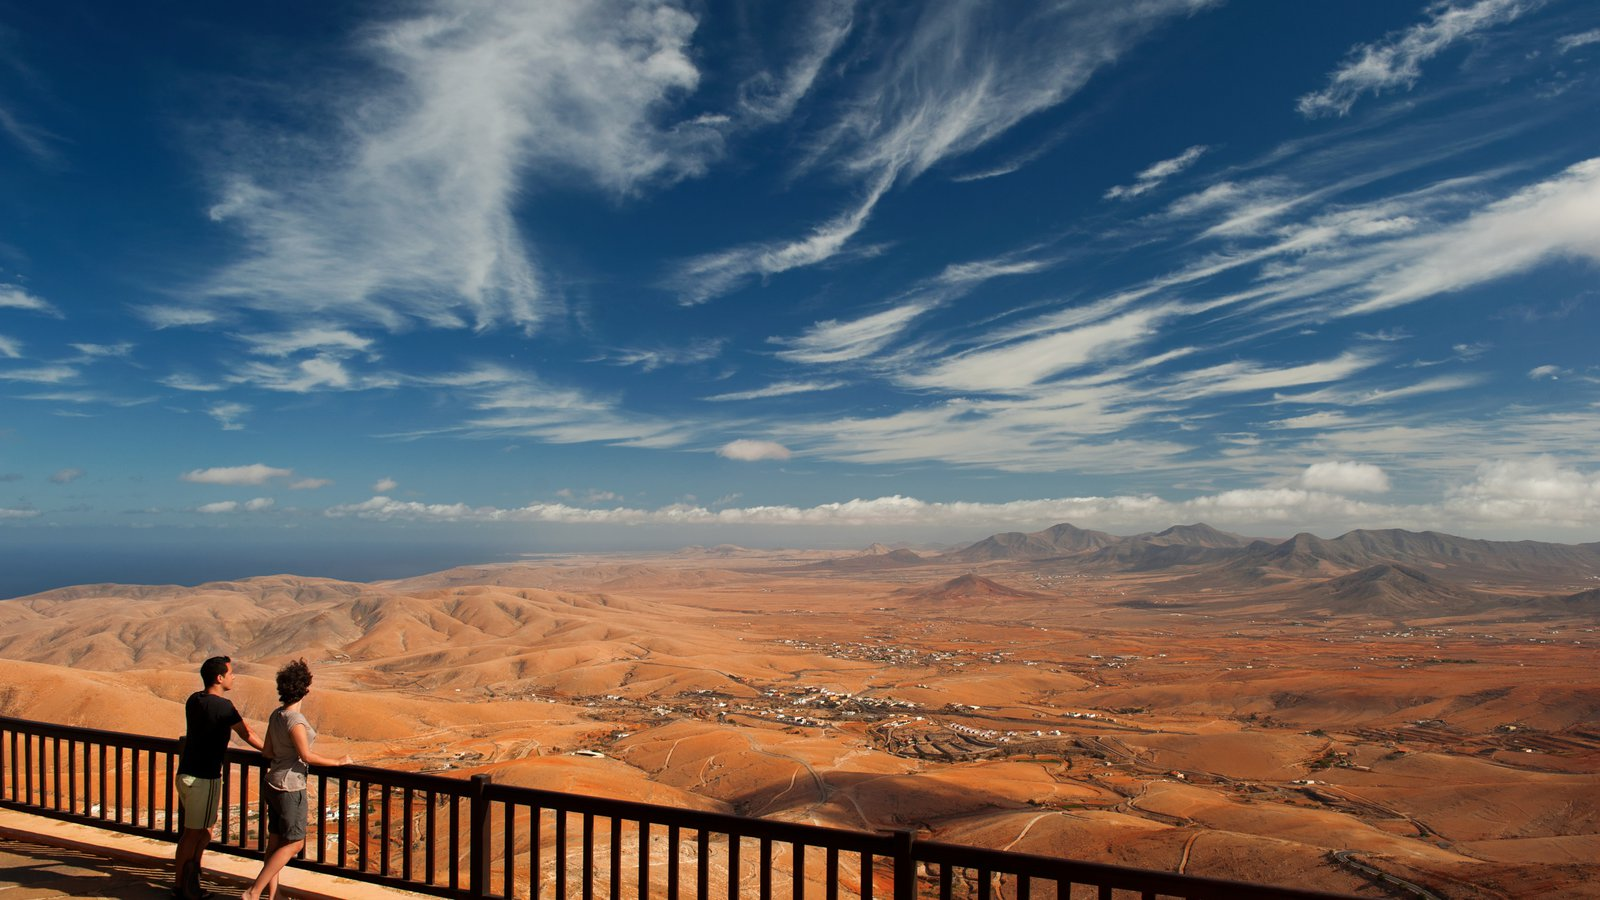 Fuerteventura featuring tranquil scenes, views and desert views